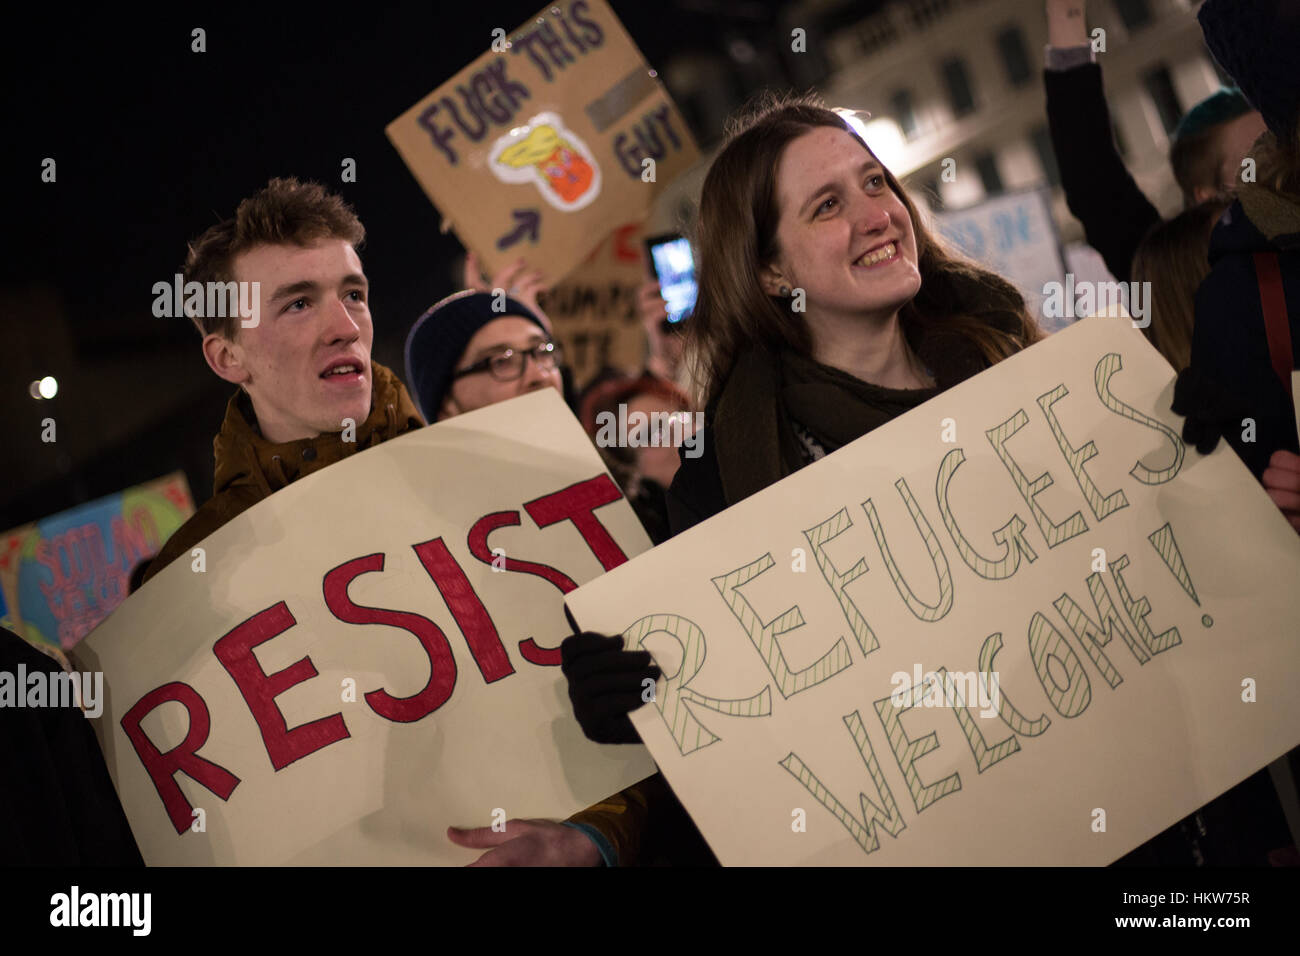 Glasgow, UK. 30th Jan, 2017. Protest against the policies and Presidency of Donald Trump, President of the United - Stock Image